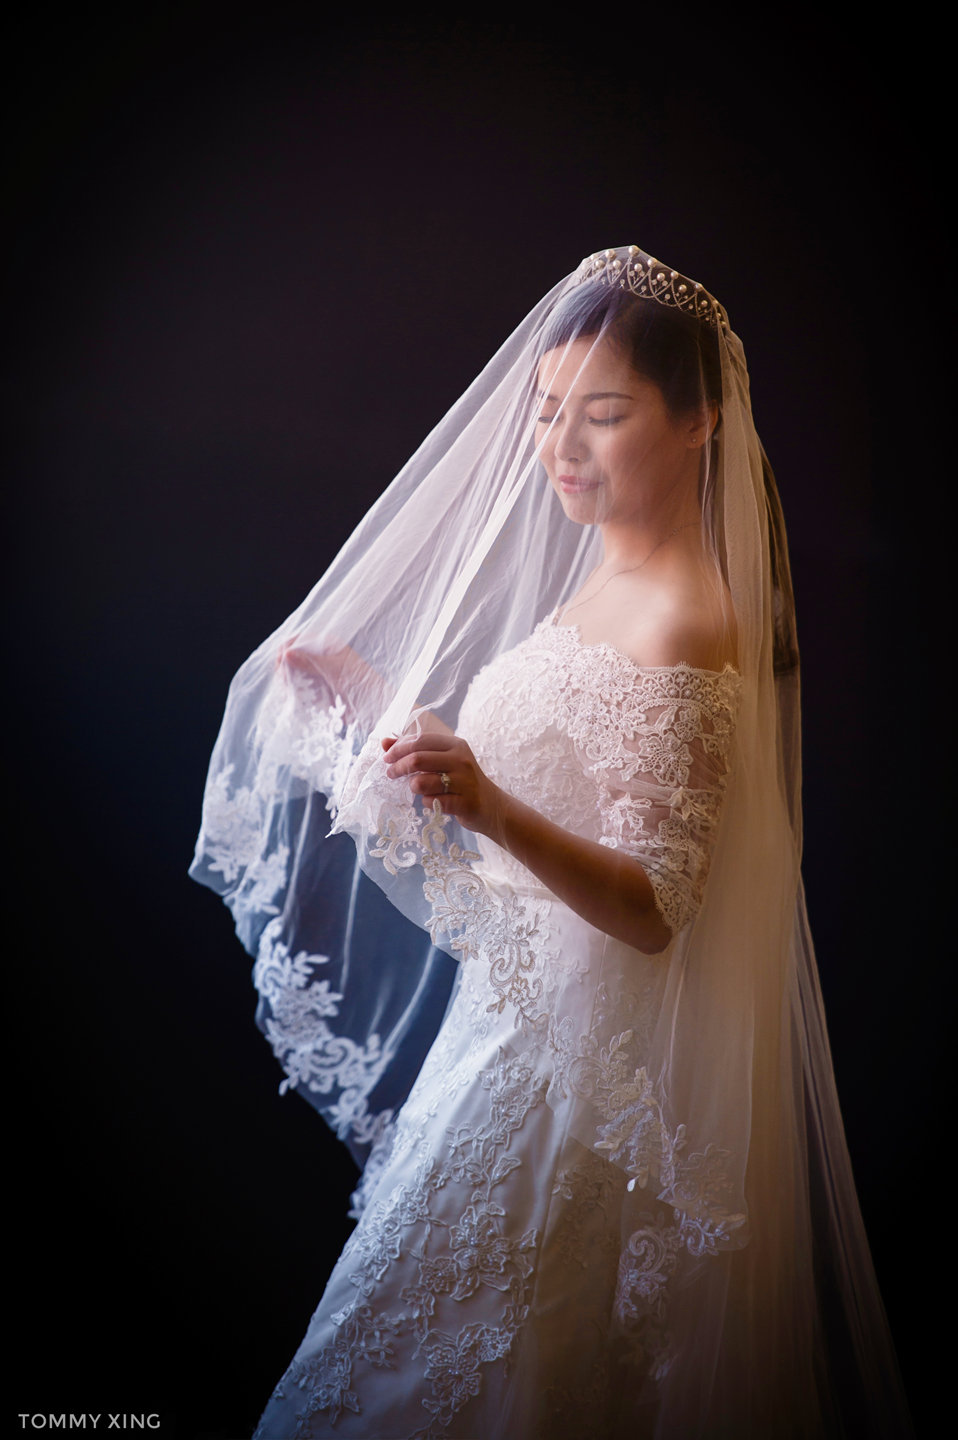 San Francisco Wedding Photo 旧金山湾区婚纱照 Tommy Xing Photography 洛杉矶 11.jpg